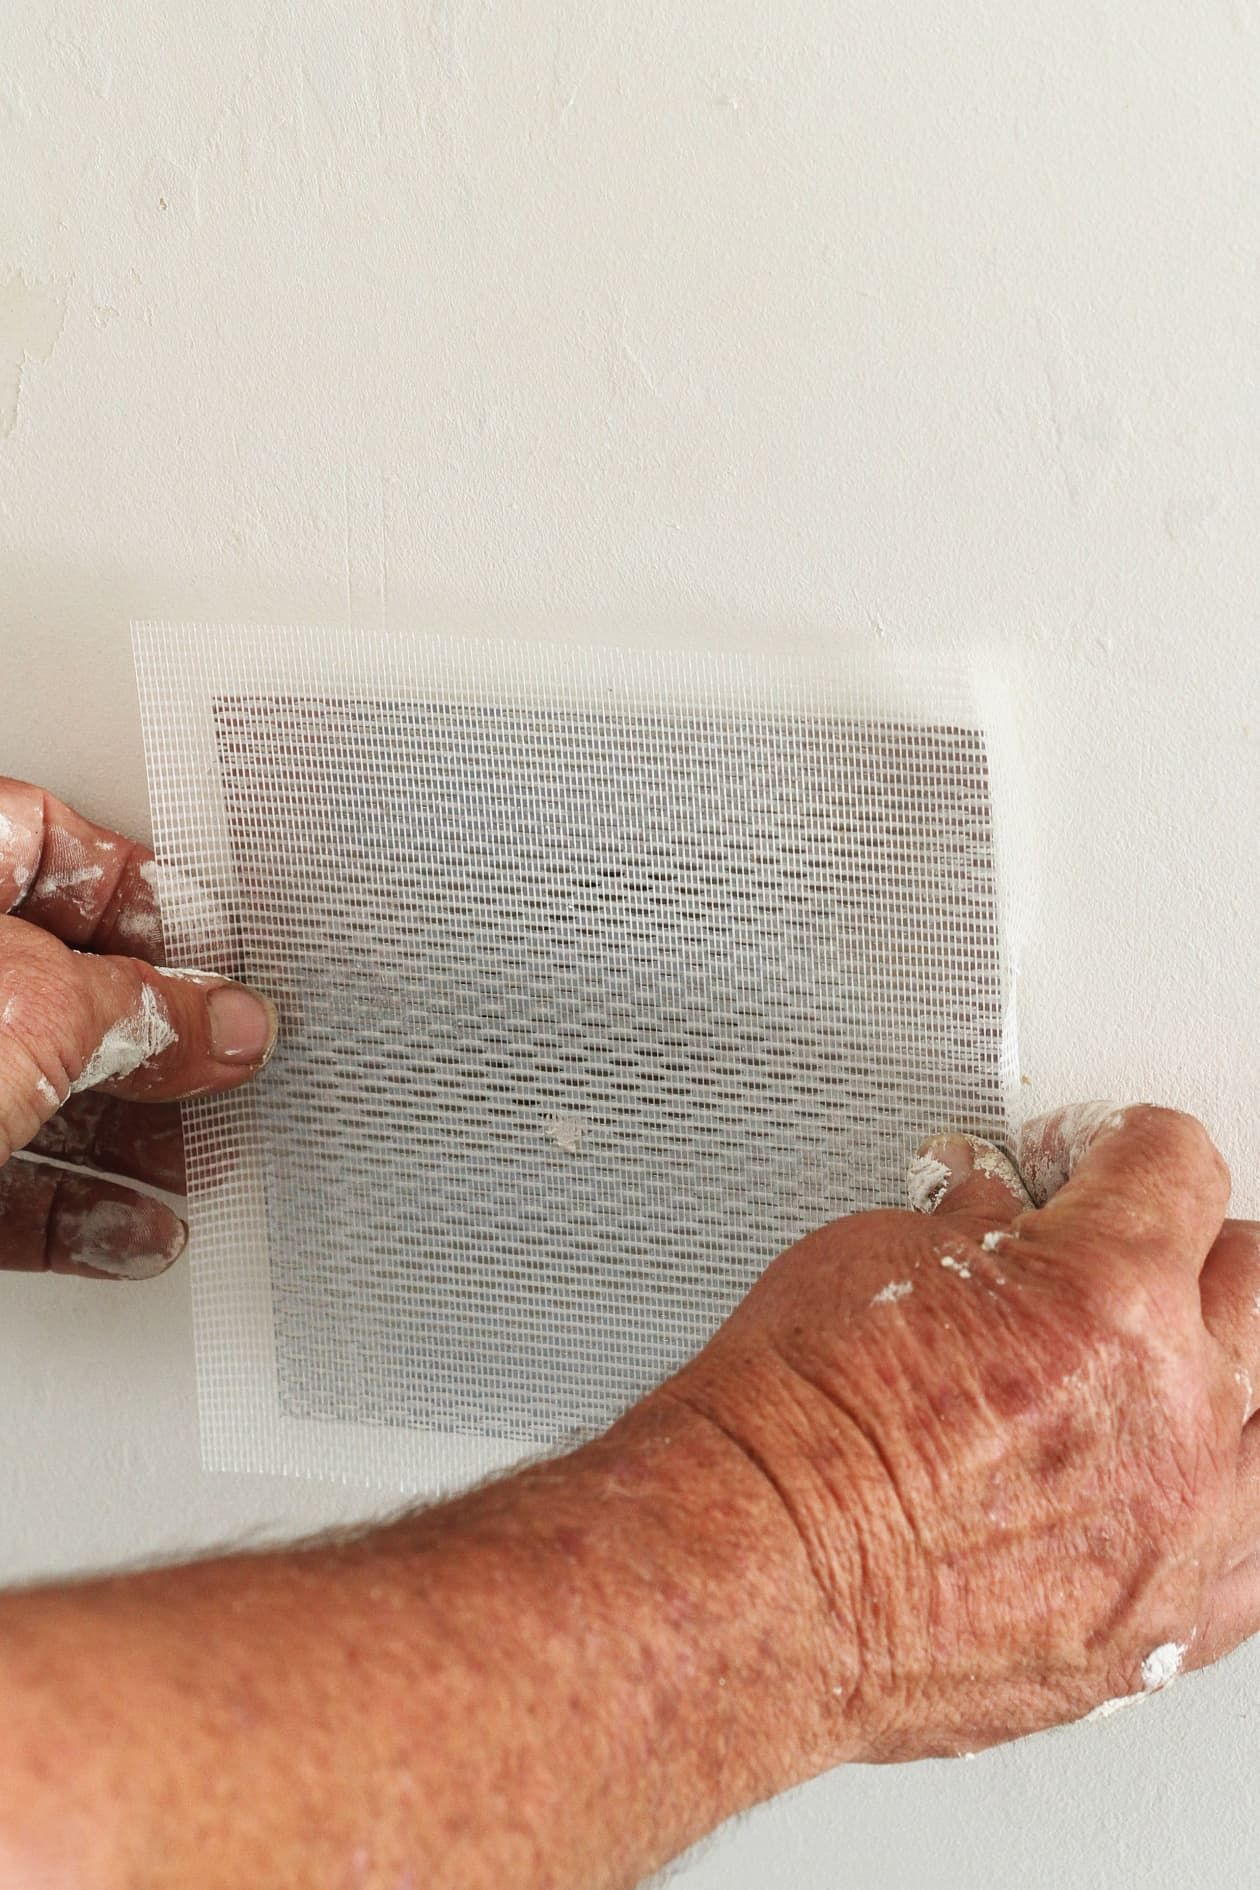 How To Patch A Hole In Drywall Or Plaster Walls Plaster Walls Diy Patching Plaster Walls Plaster Repair